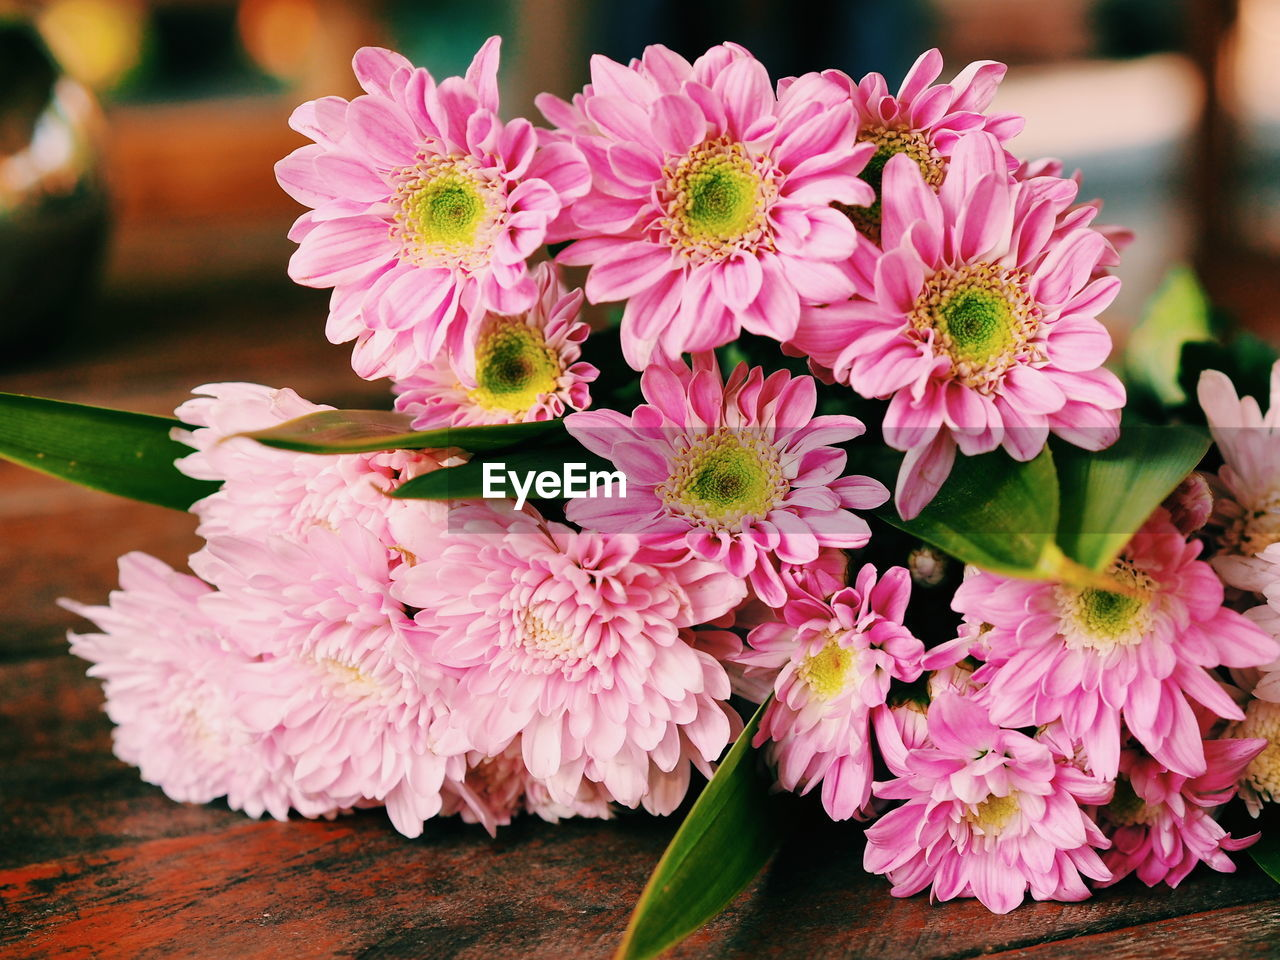 flower, beauty in nature, petal, freshness, nature, flower head, fragility, no people, close-up, table, pink color, indoors, day